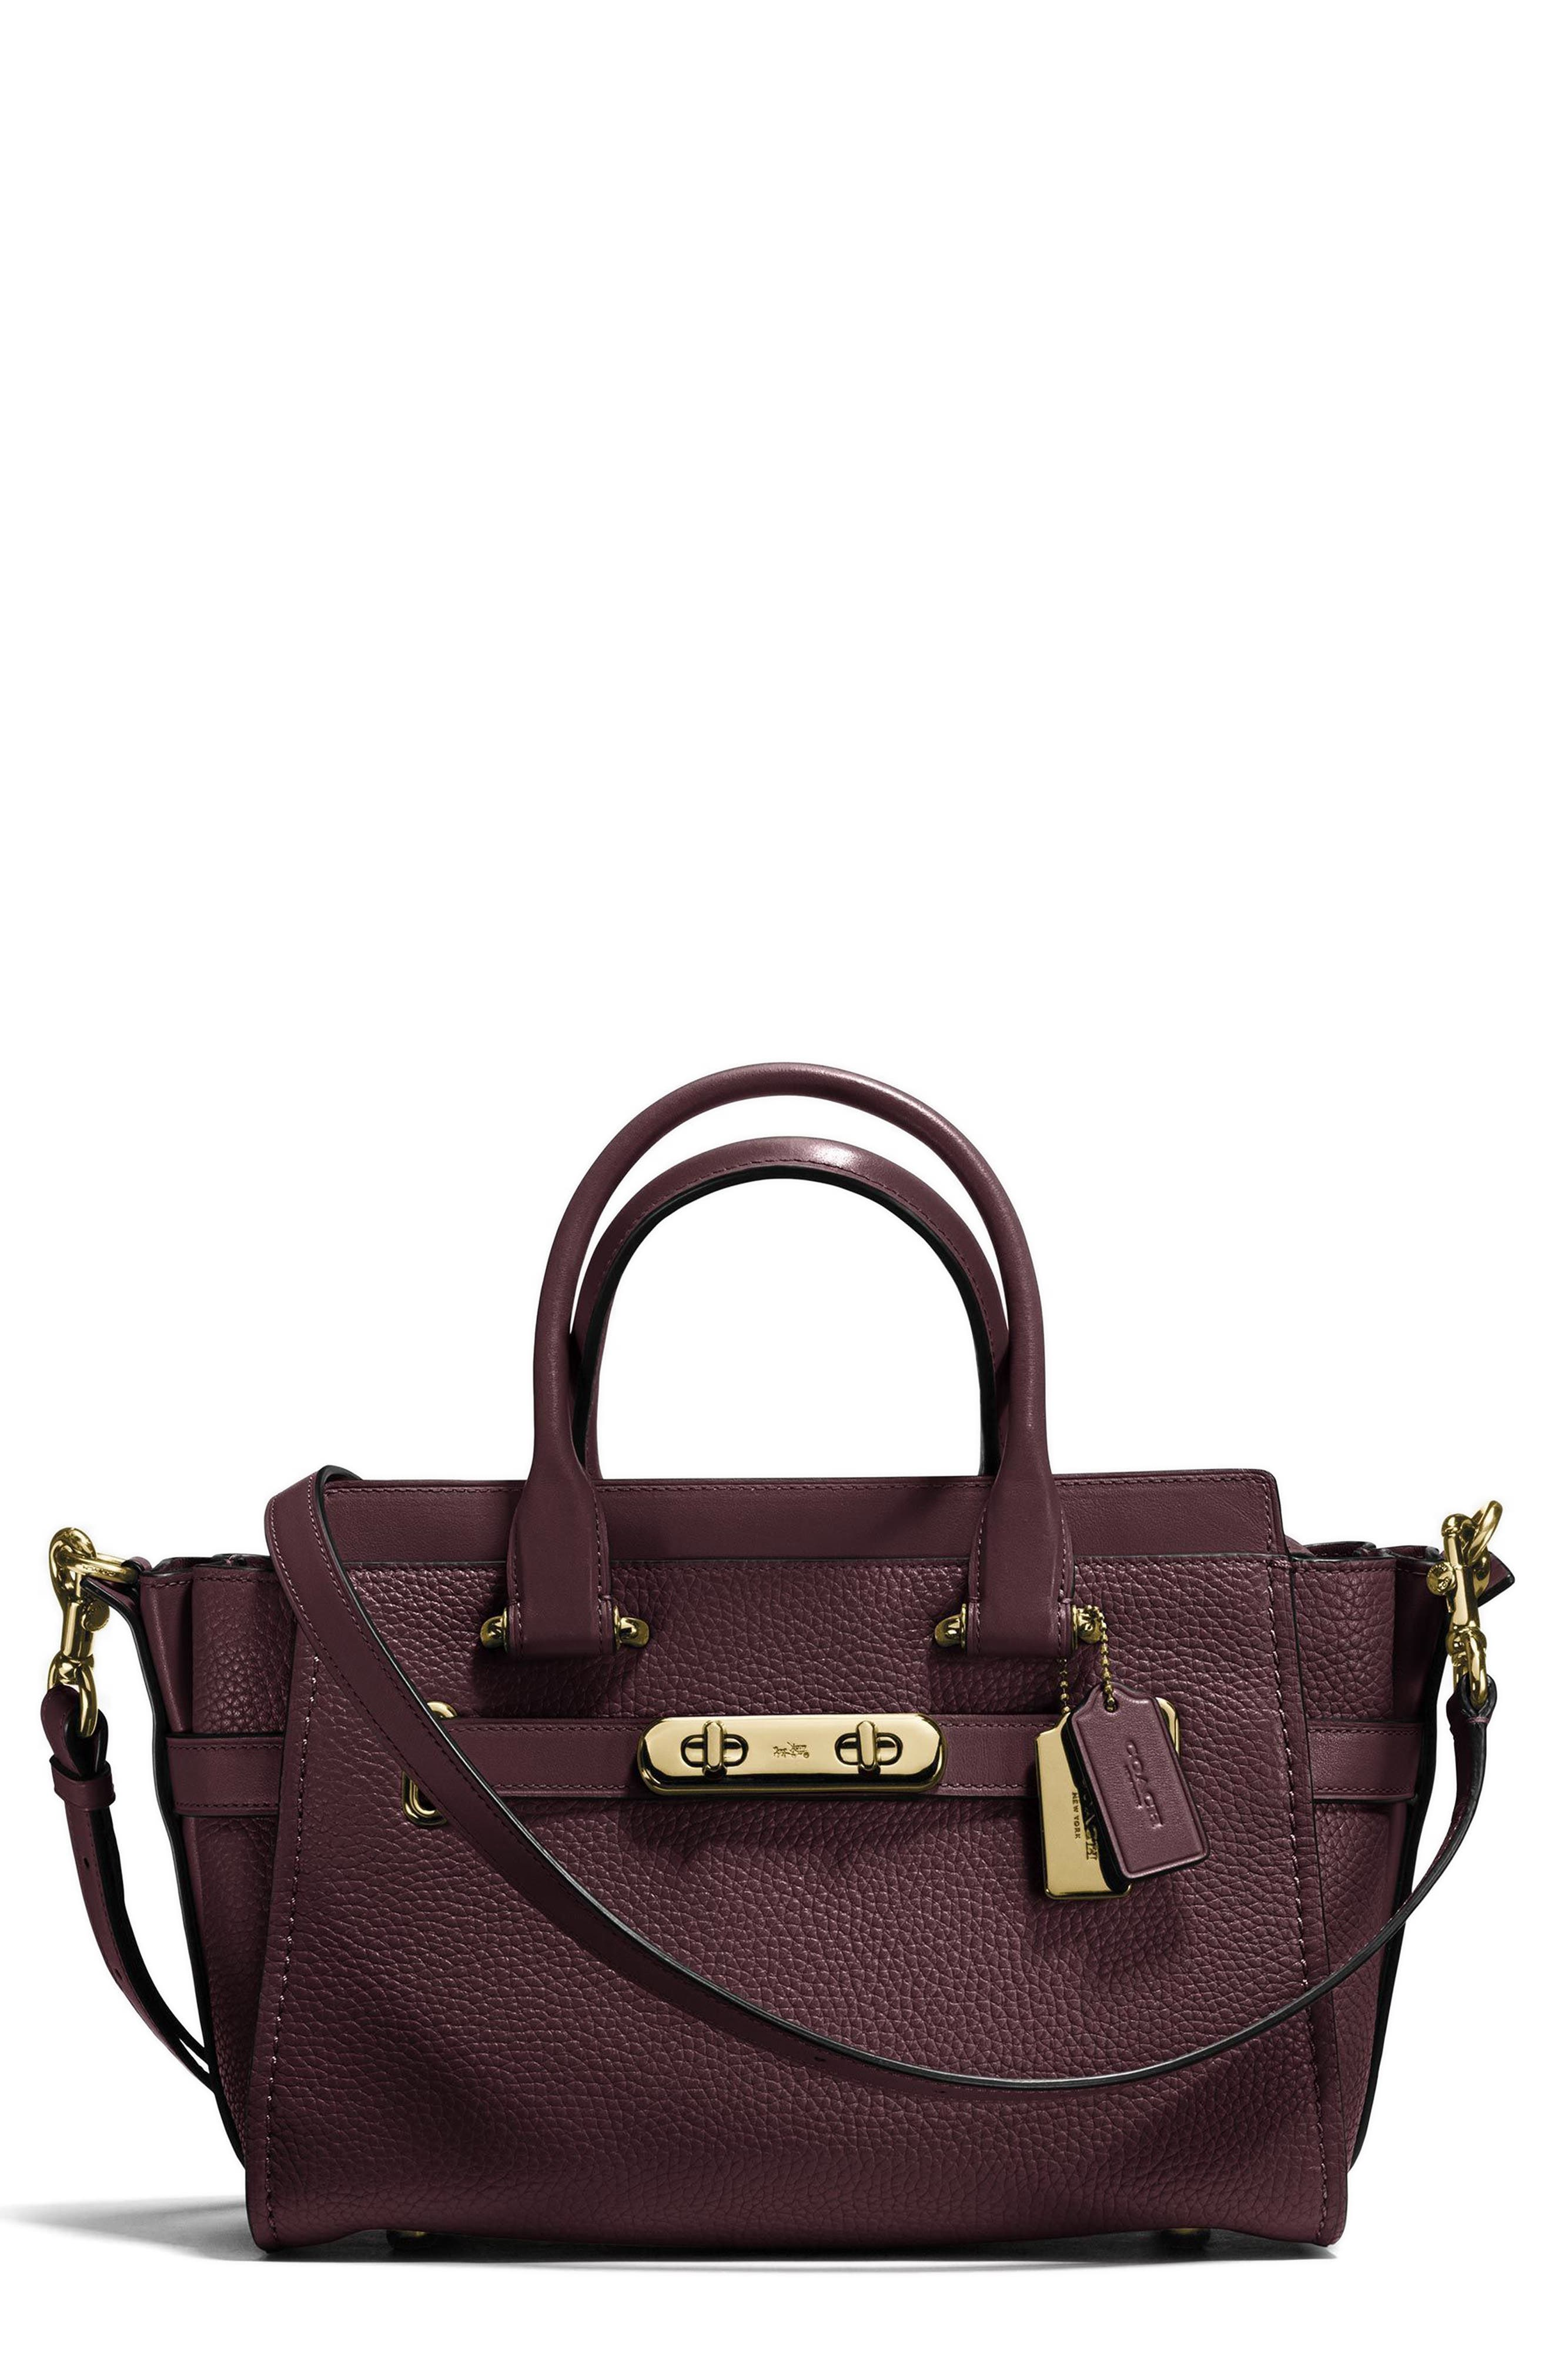 Swagger 27 Calfskin Leather Satchel,                         Main,                         color,